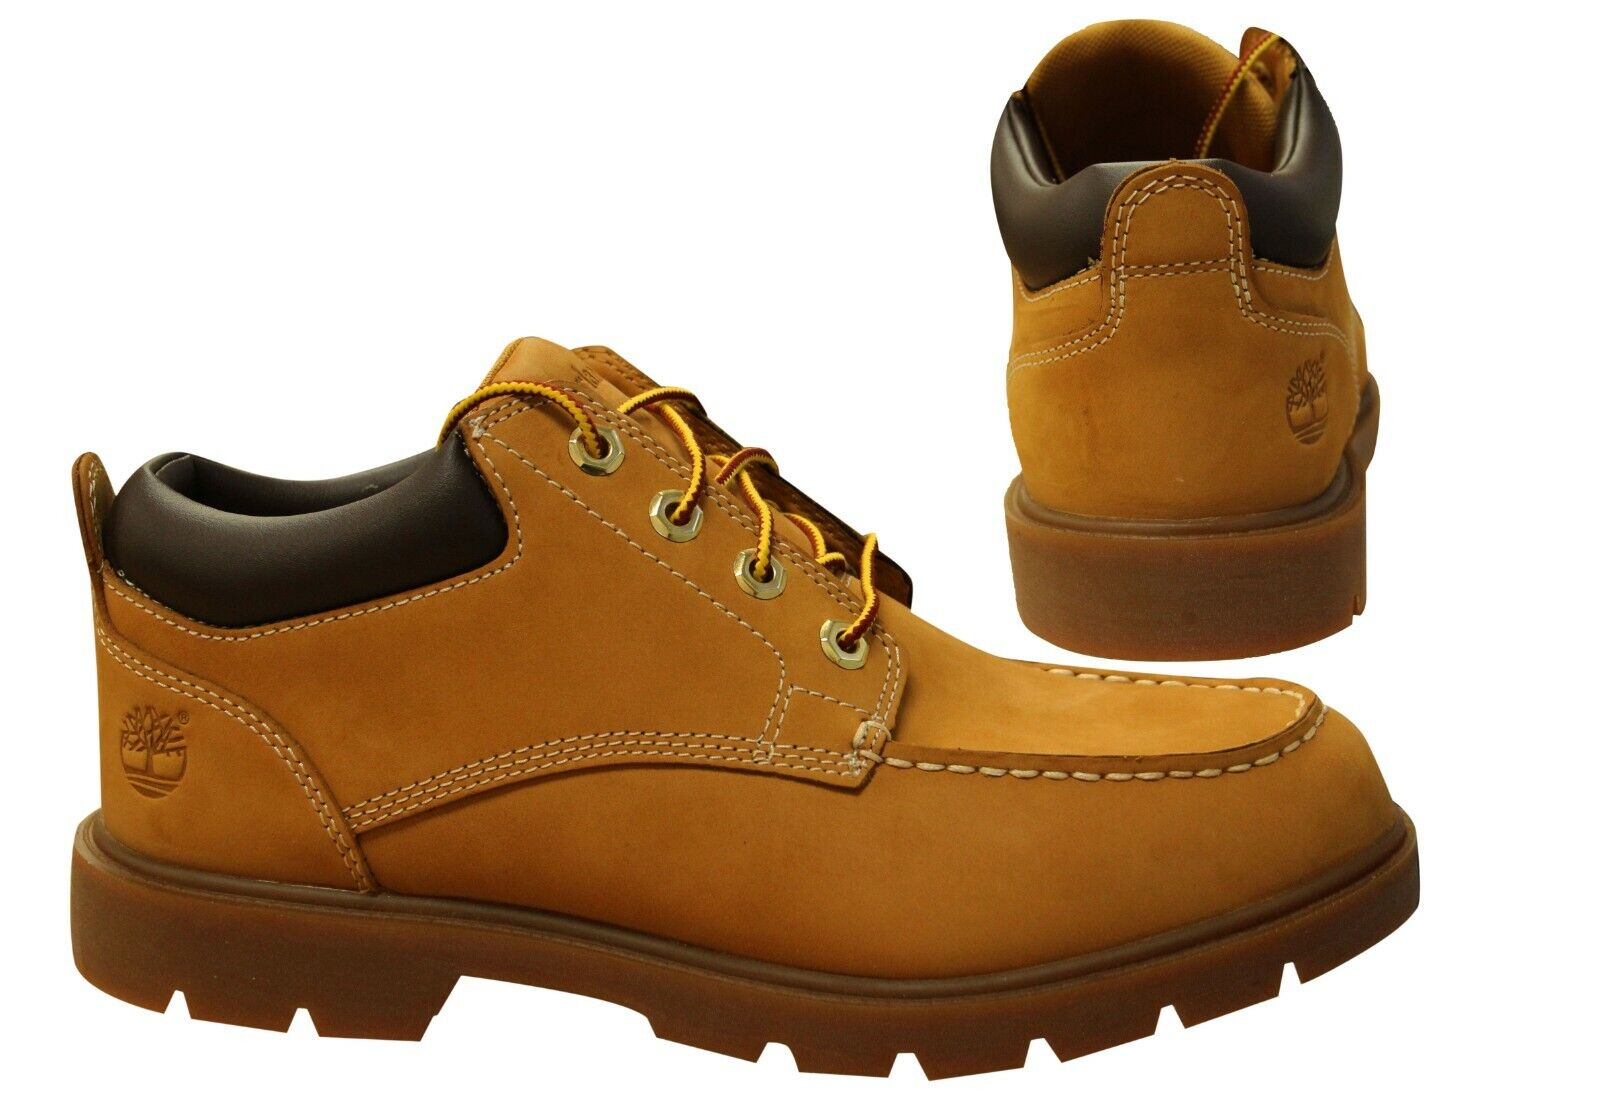 Details about Timberland Basic Mount Oxford Wheat Leather Lace Up Mens Boots 6162B B103C